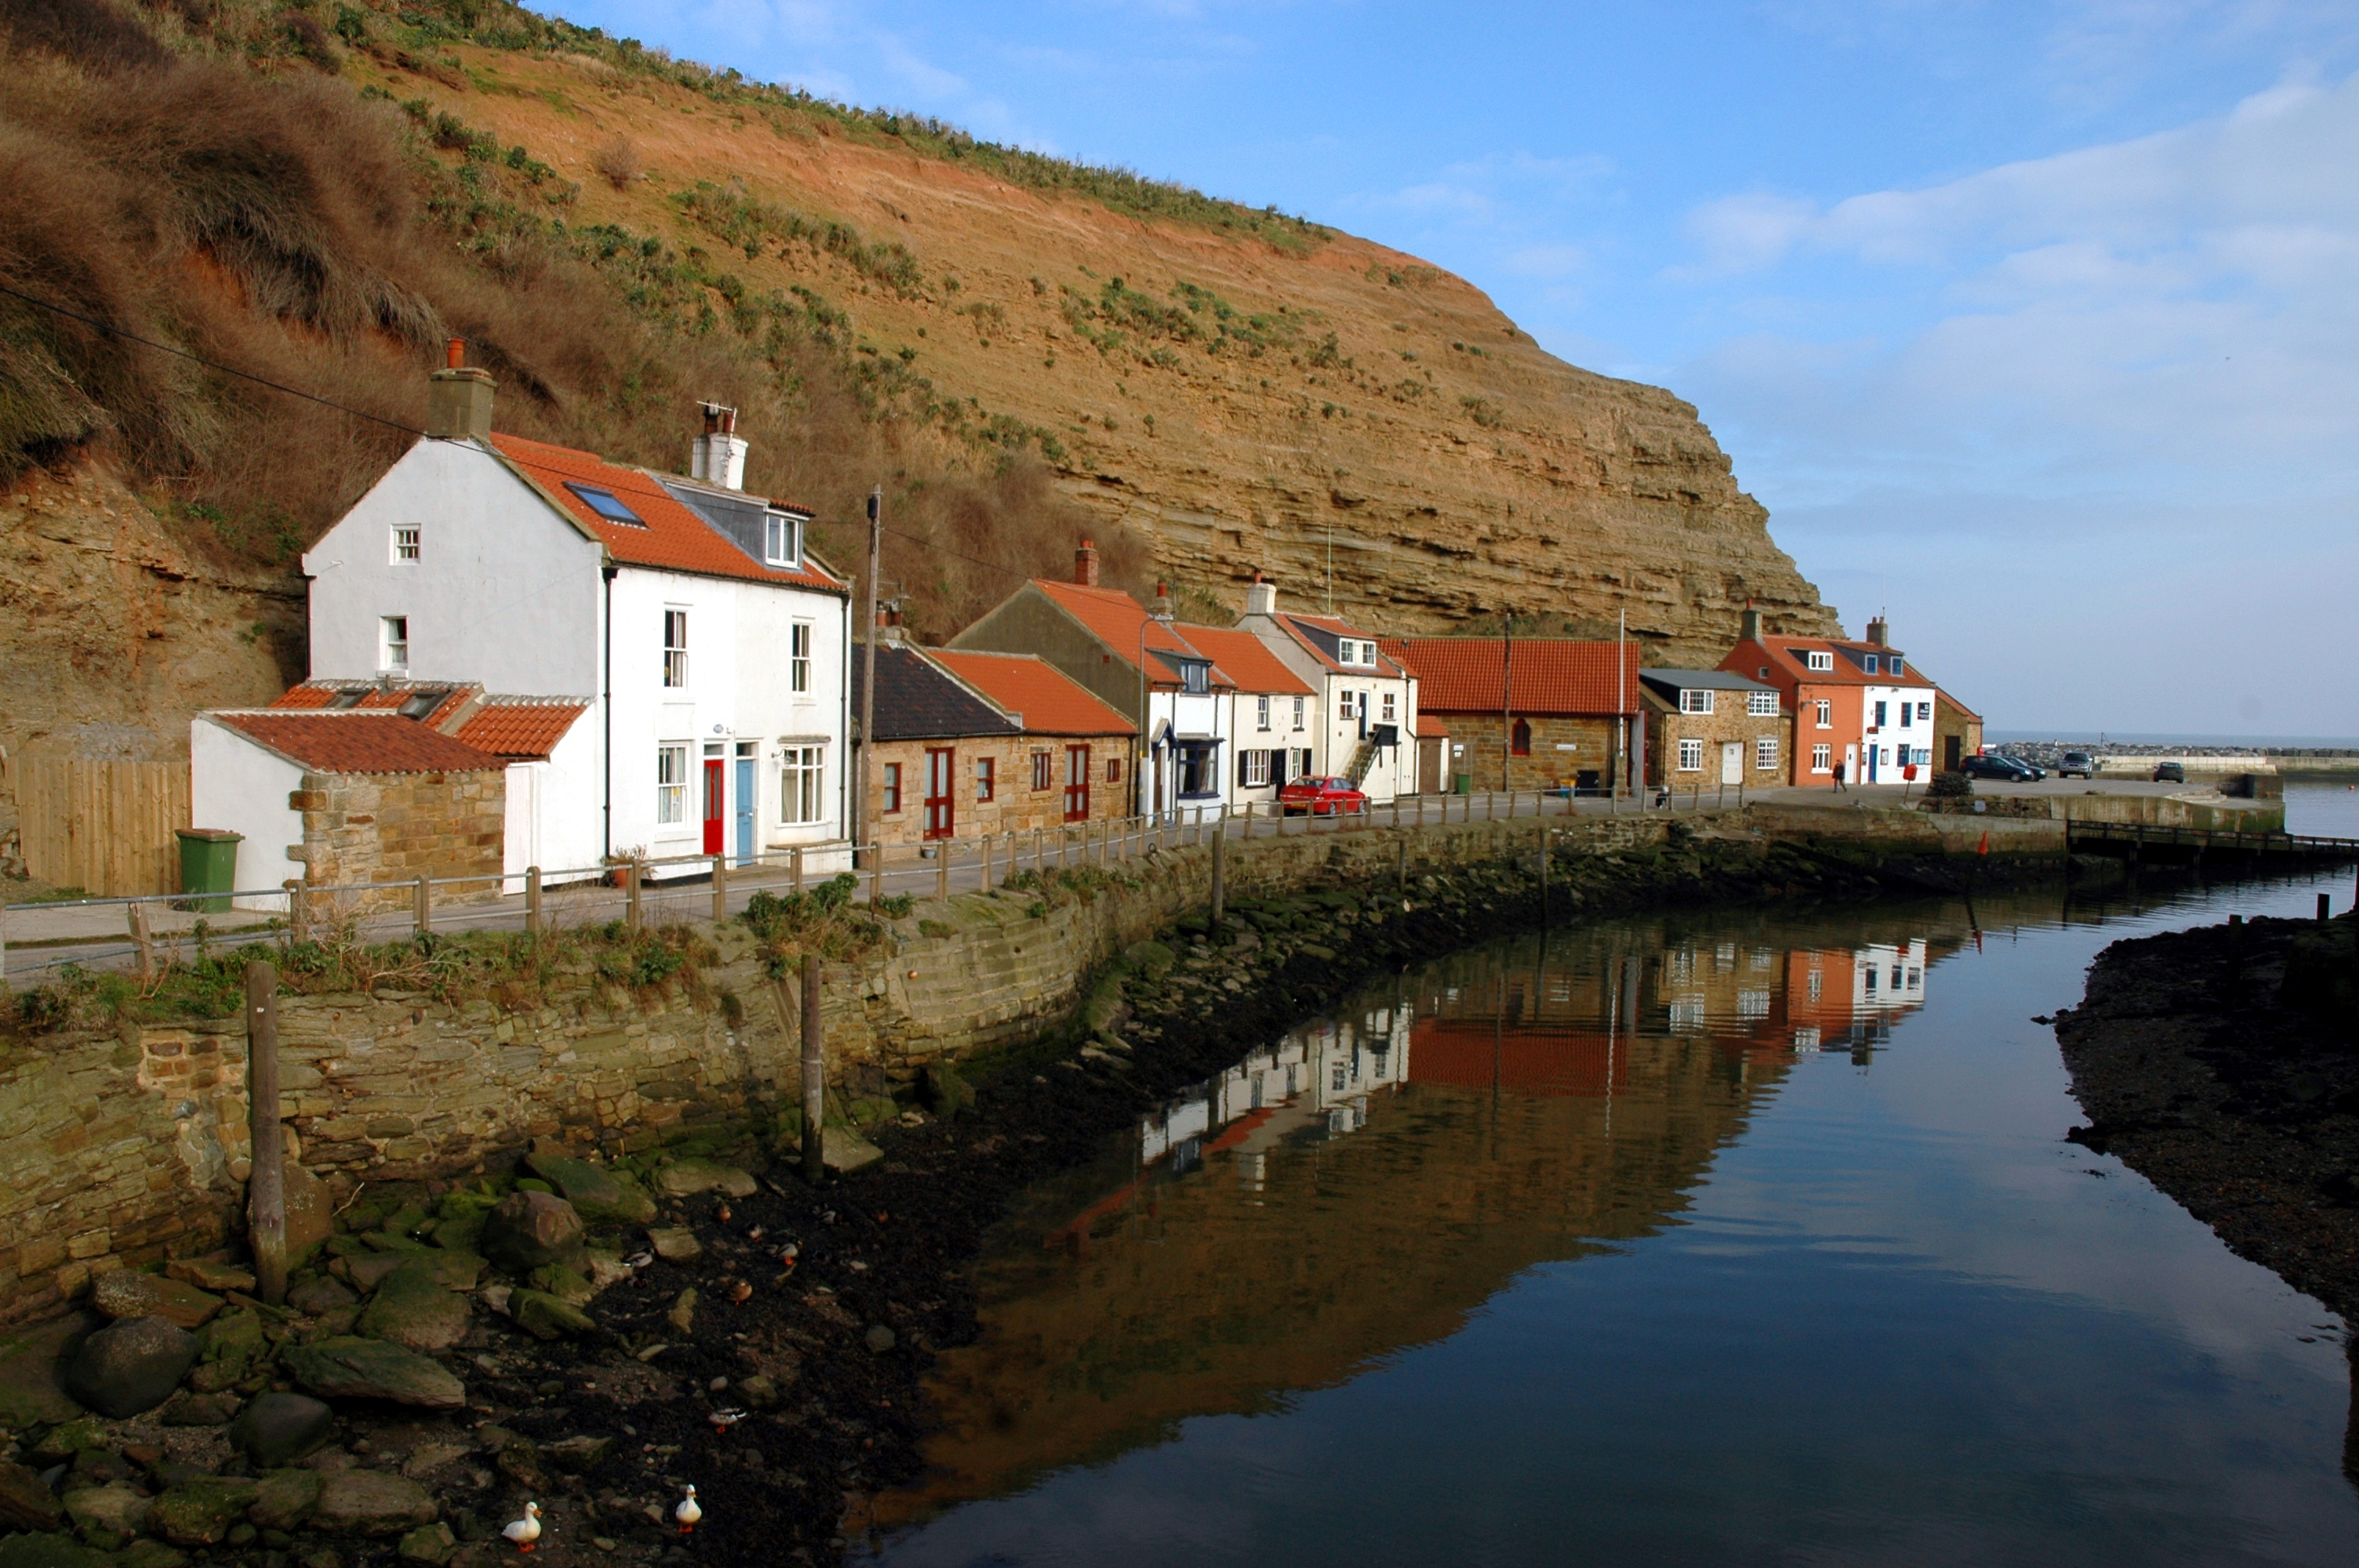 photo of cottages in Staithes, North Yorkshire